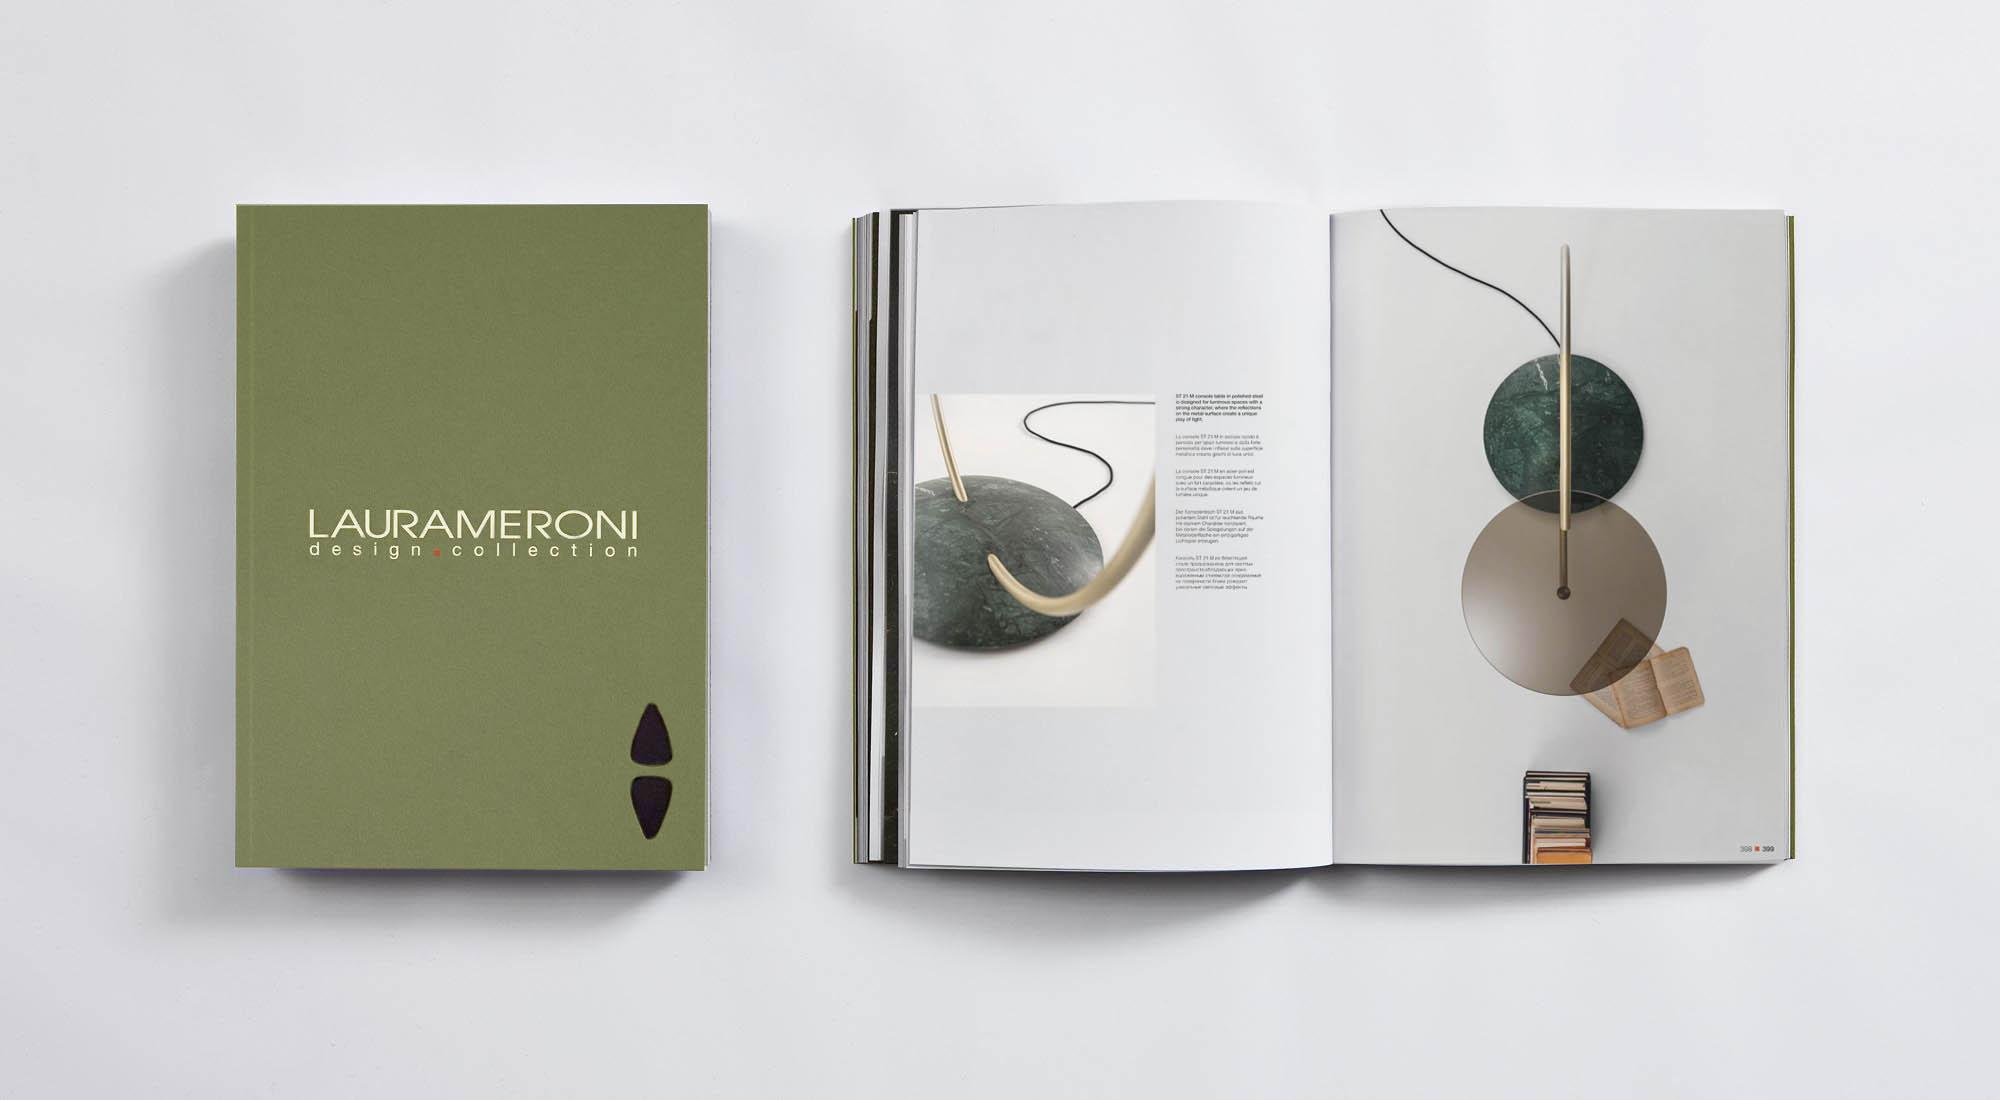 laurameroni design collection luxury furniture catalogue free download